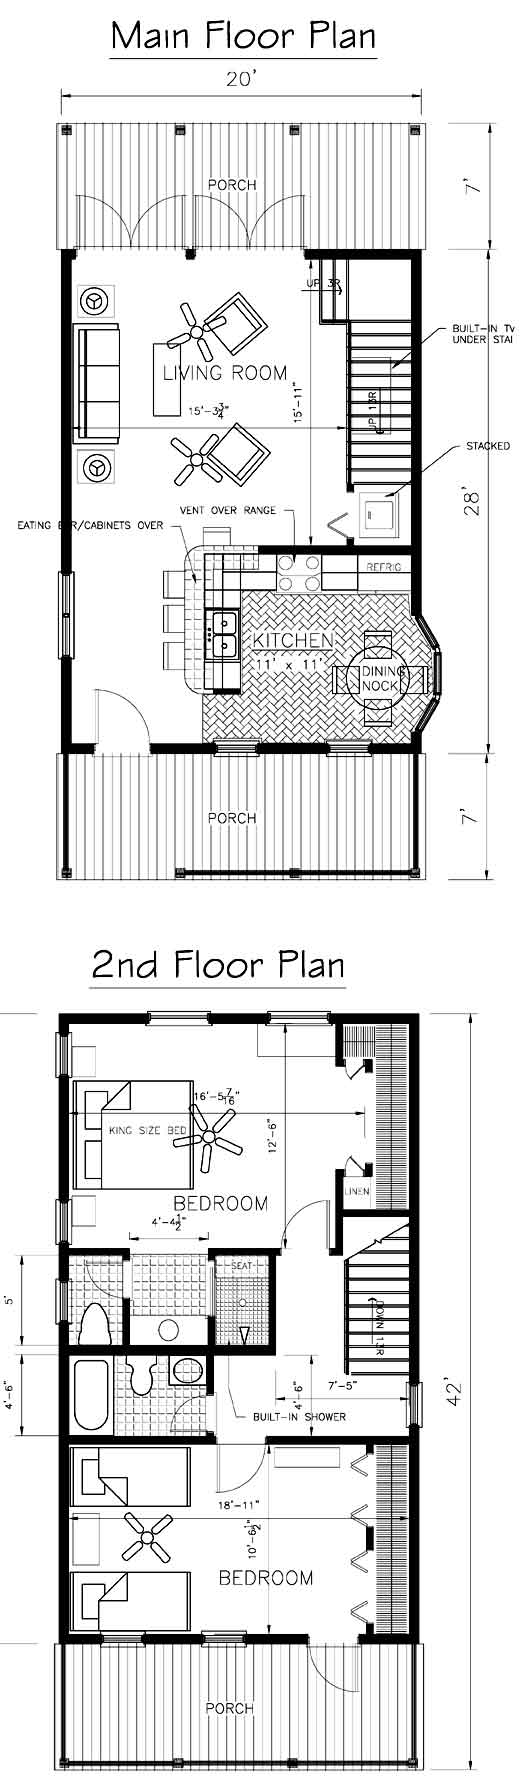 Enjoyable 17 Best Images About Floor Plans Id Like To Be In On Pinterest Largest Home Design Picture Inspirations Pitcheantrous